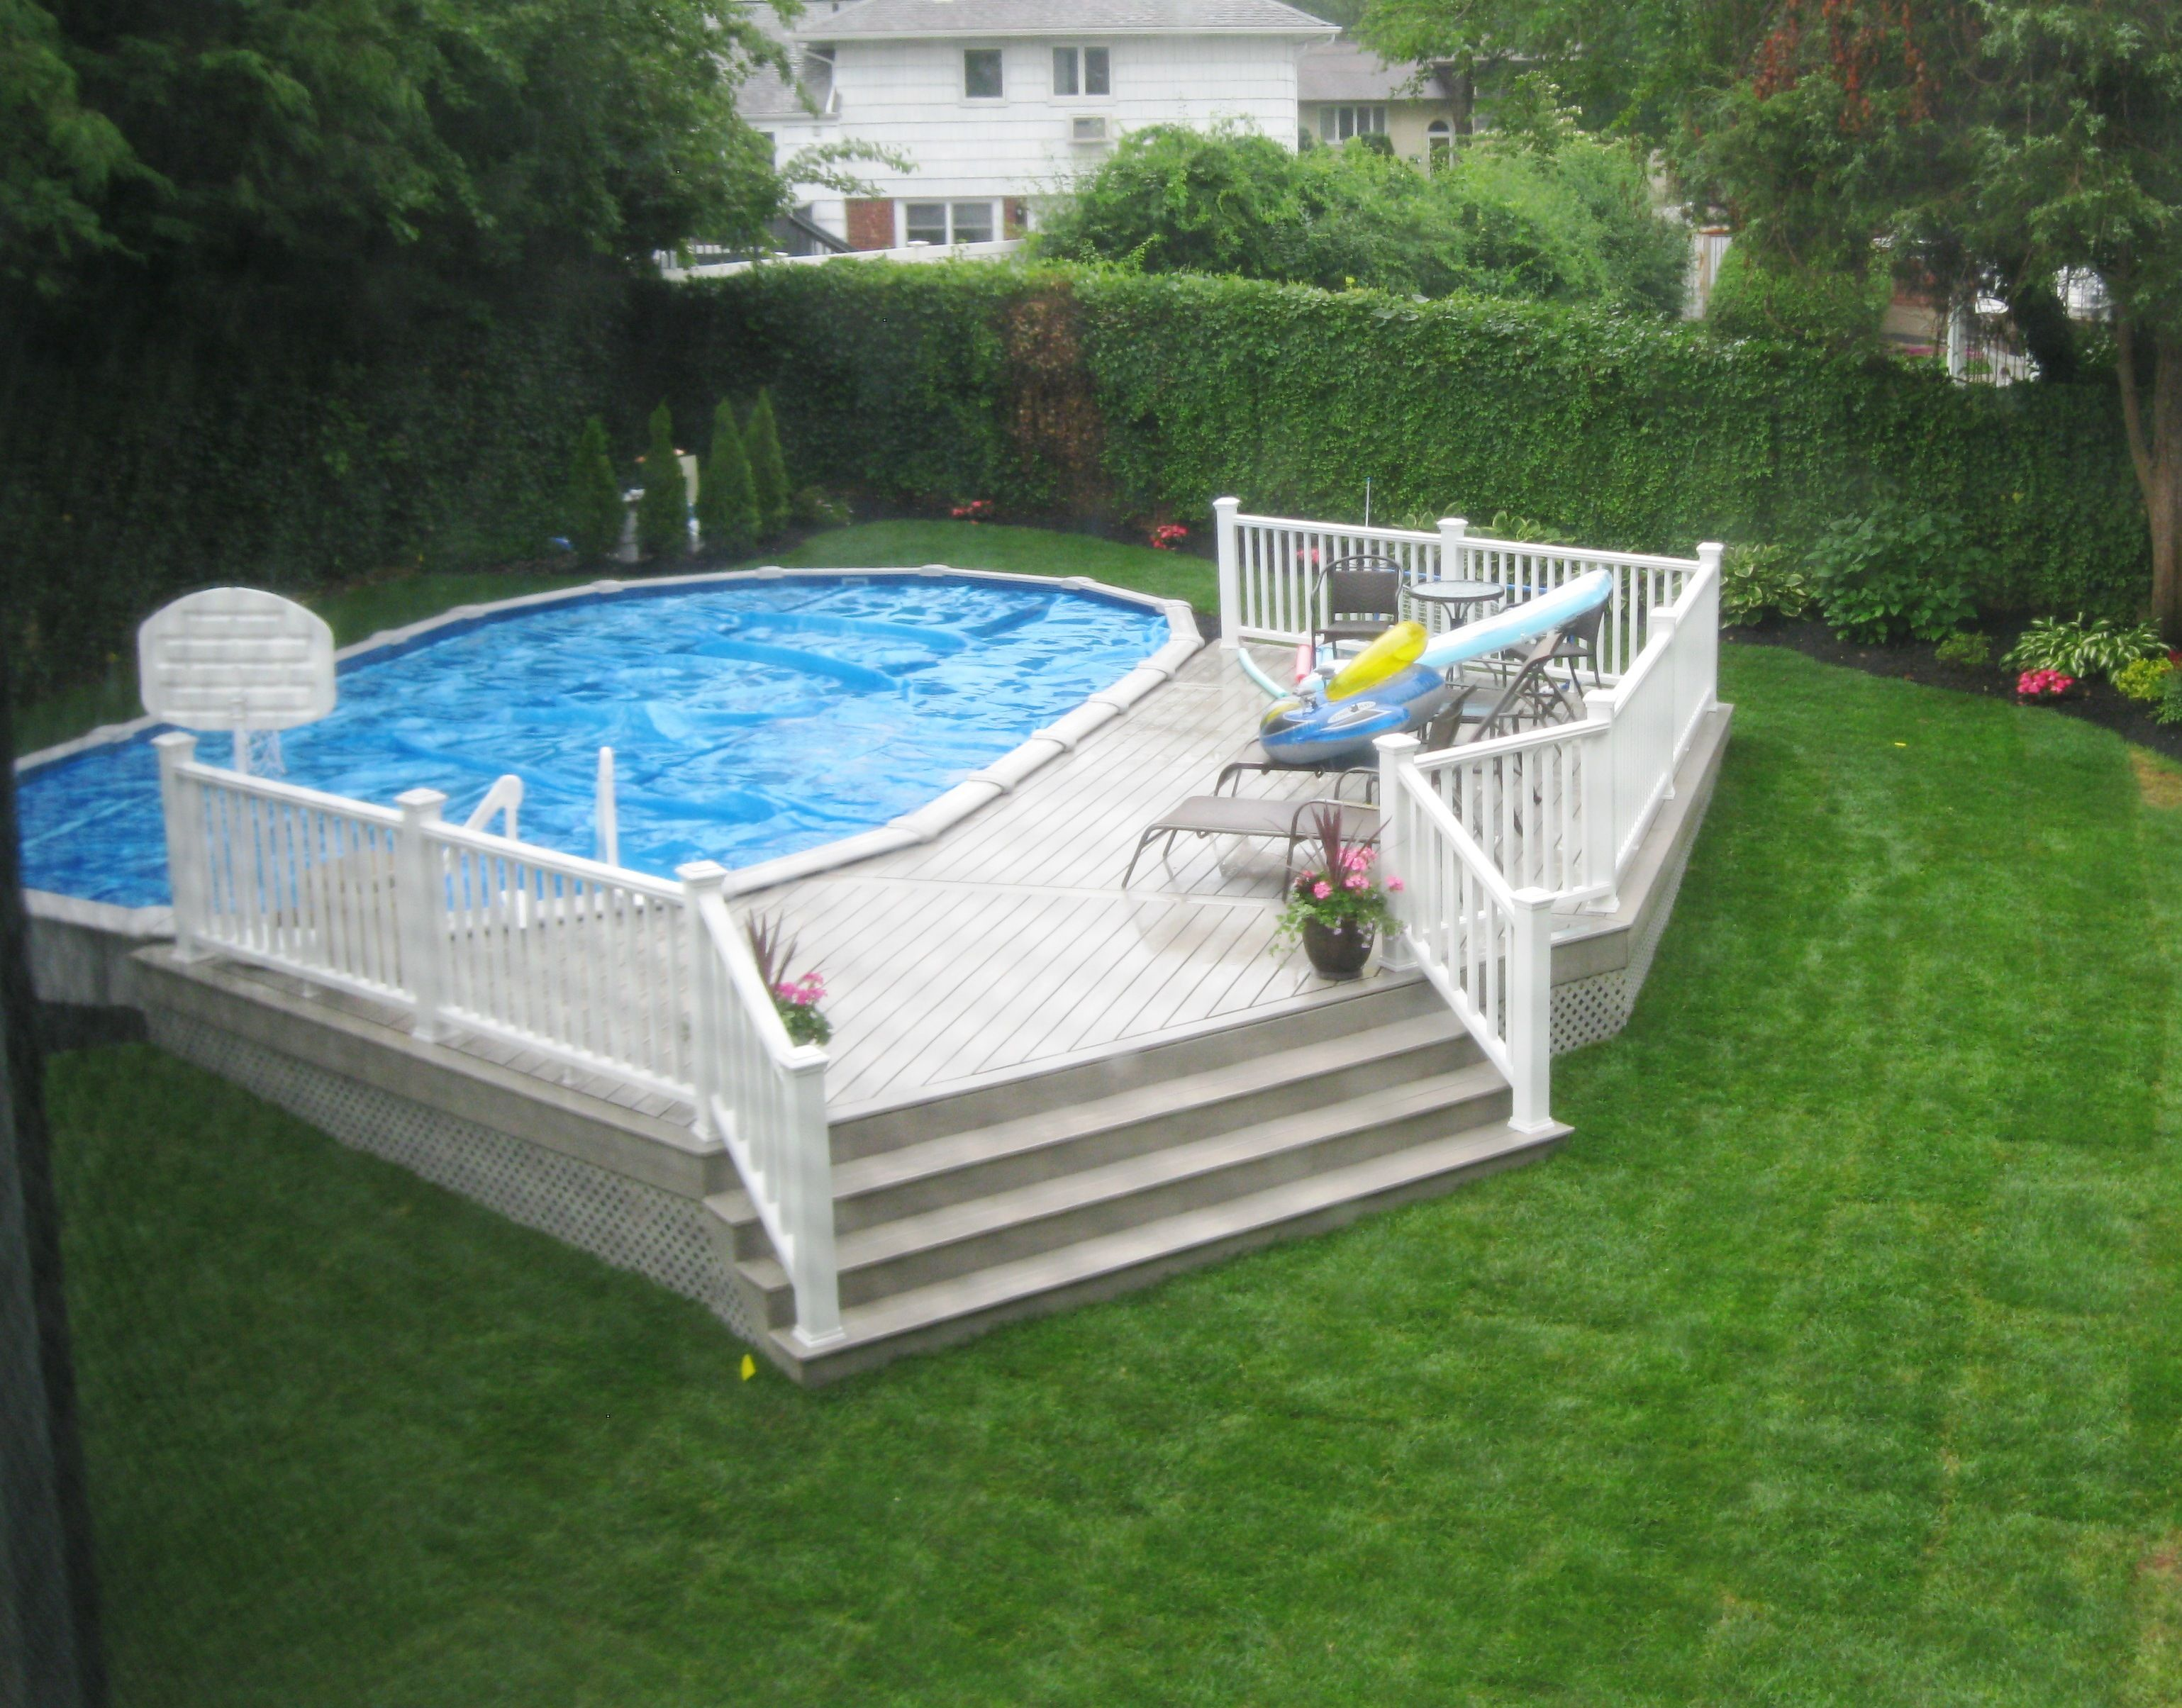 18x33 Semi Inground Pool With Deck Pool Pinterest Semi Inground Pools Decking And Backyard